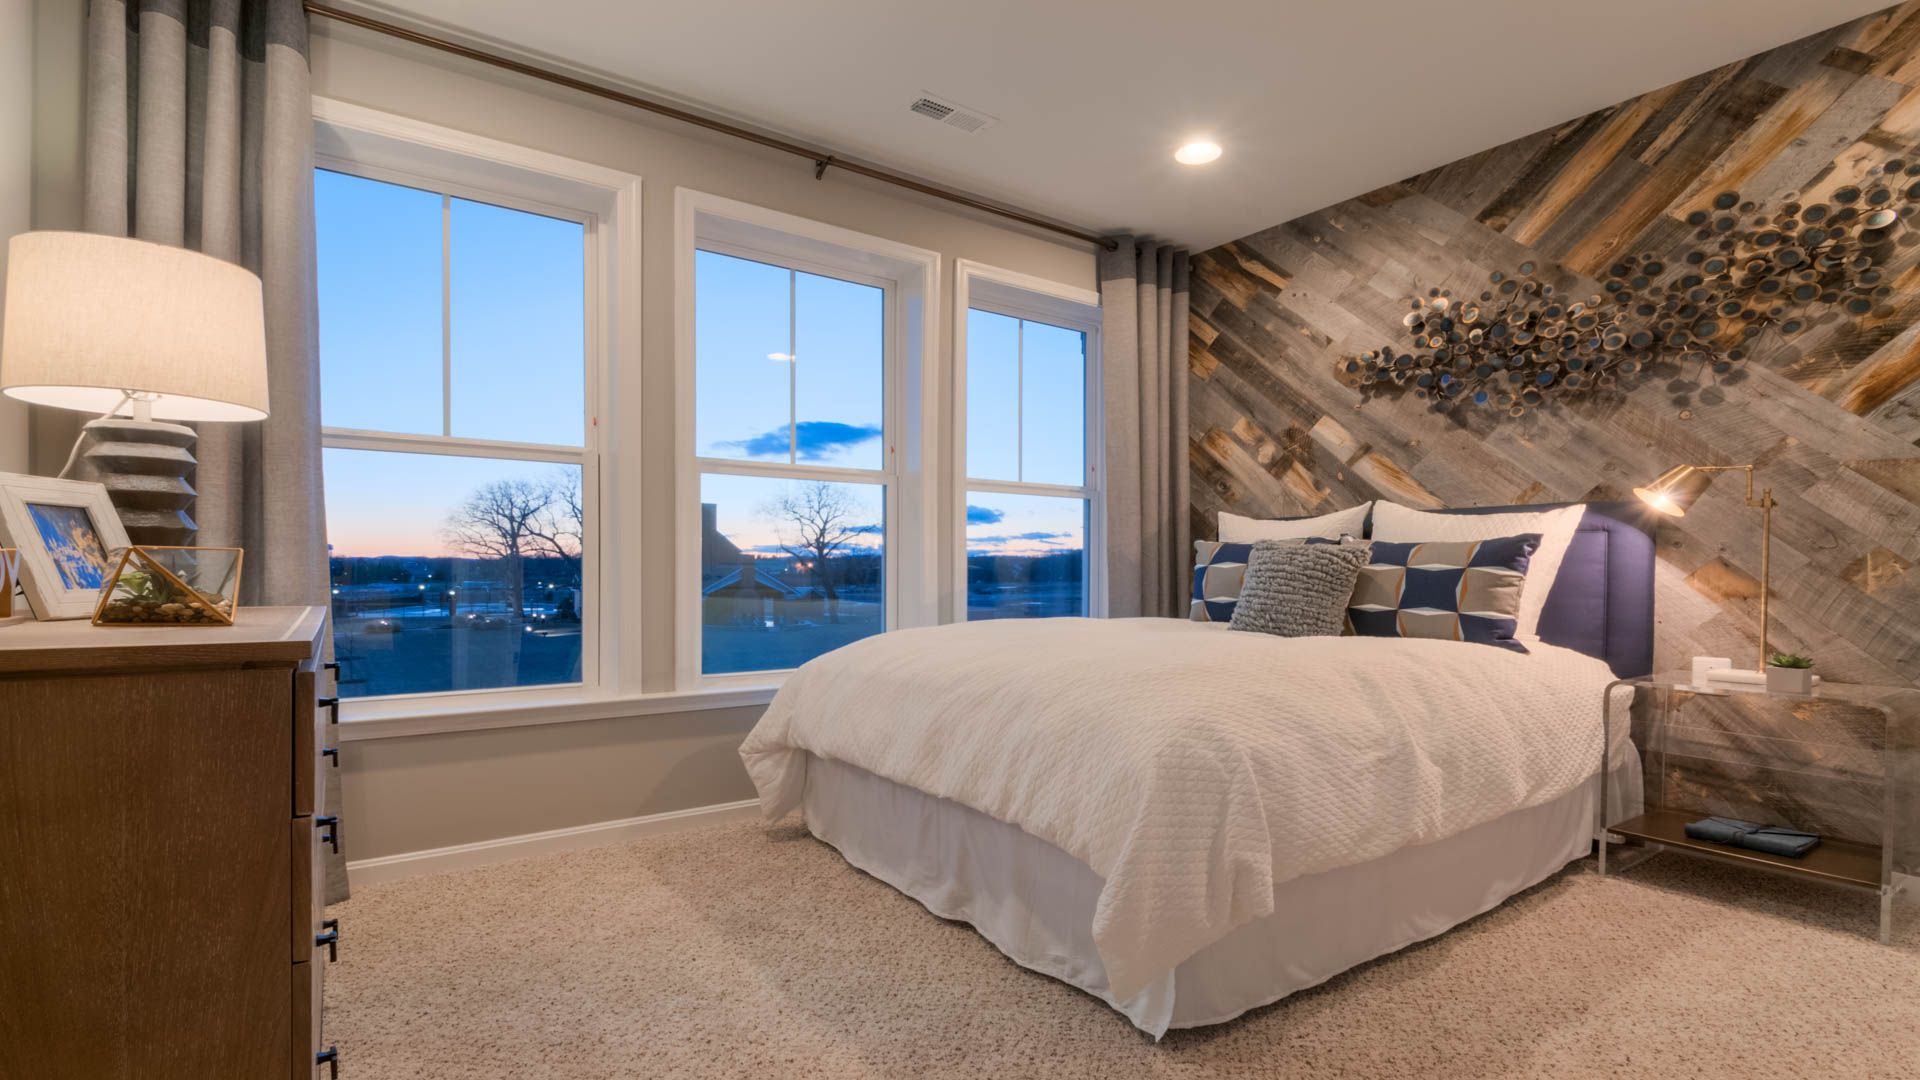 Bedroom featured in The Vanderbilt By Wormald Homes in Washington, MD